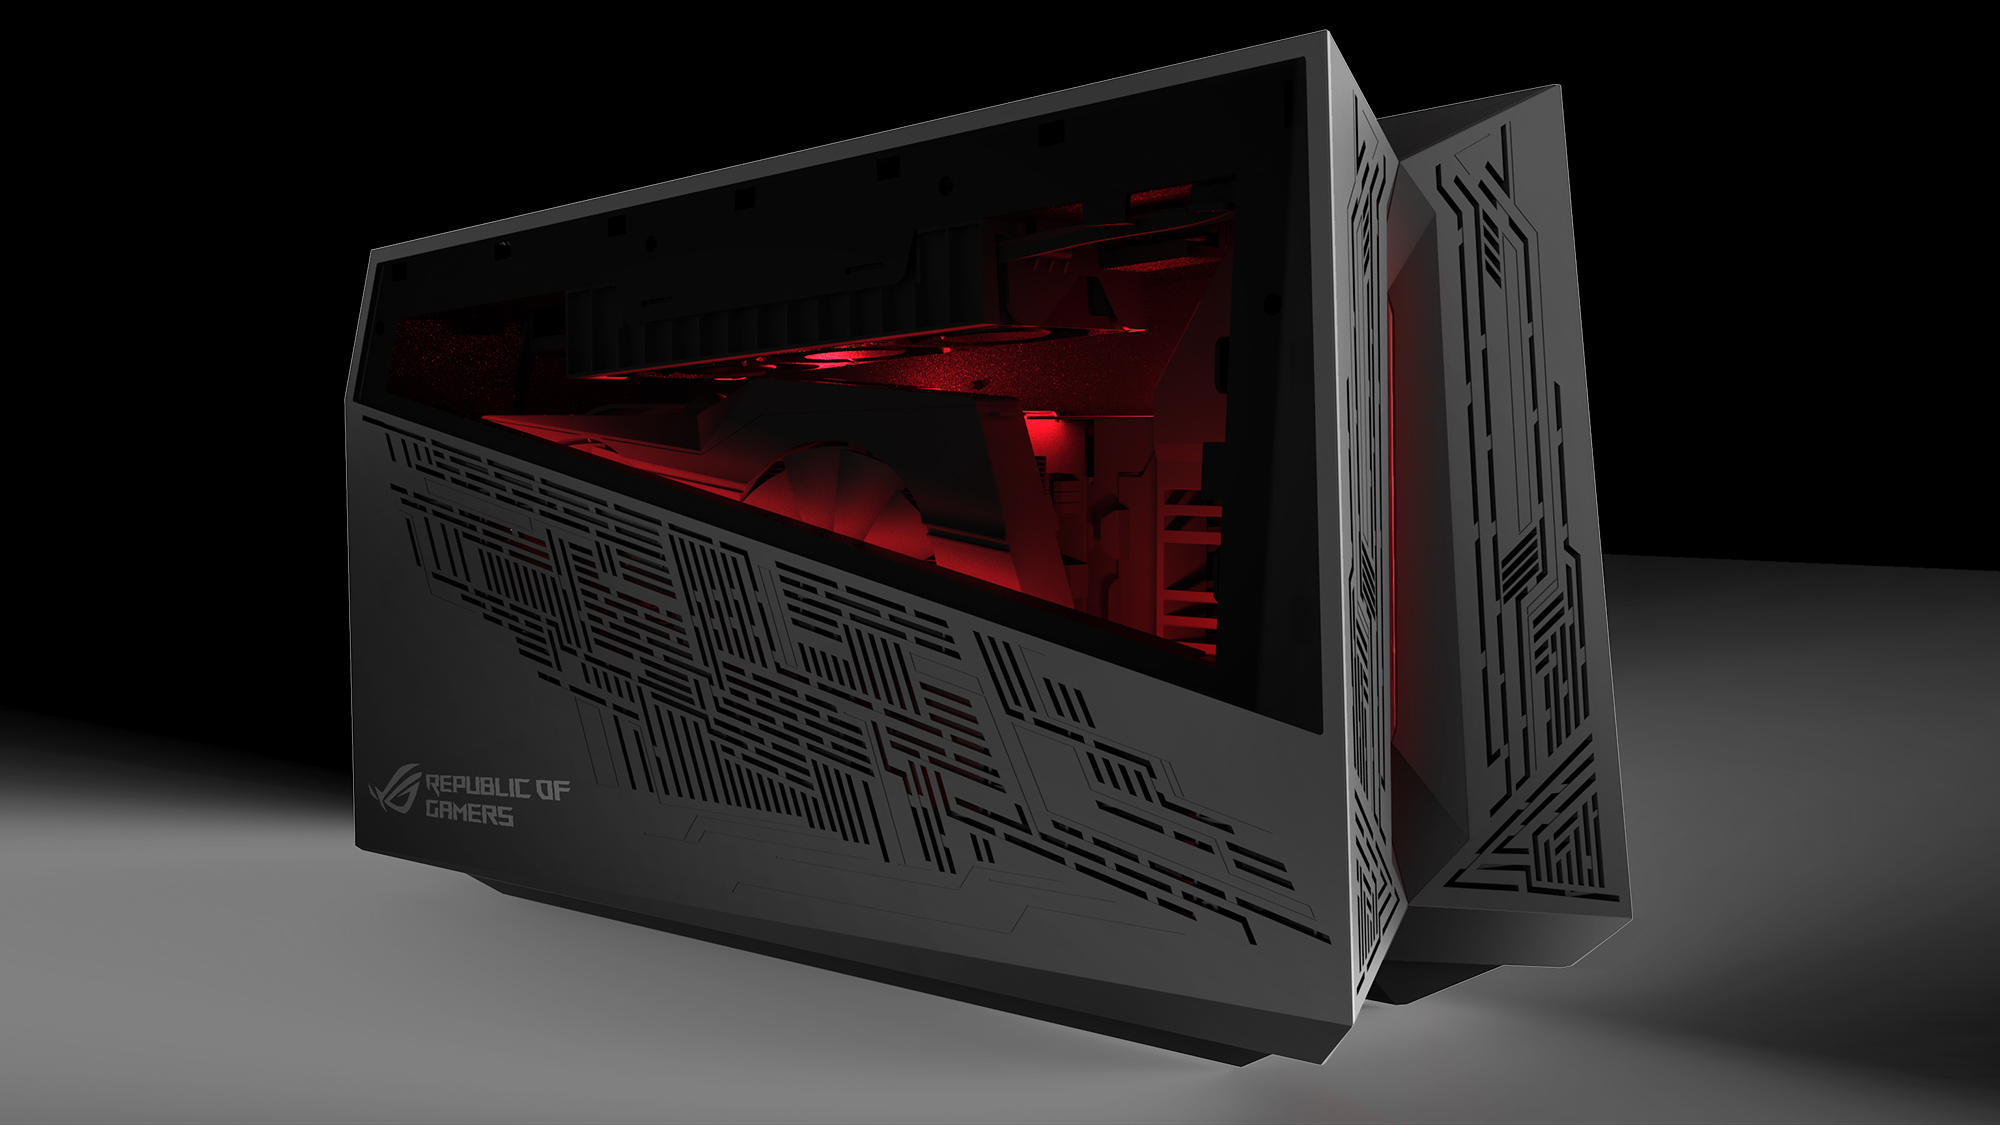 ASUS ROG announce their XG Station 2 external graphics enclosure